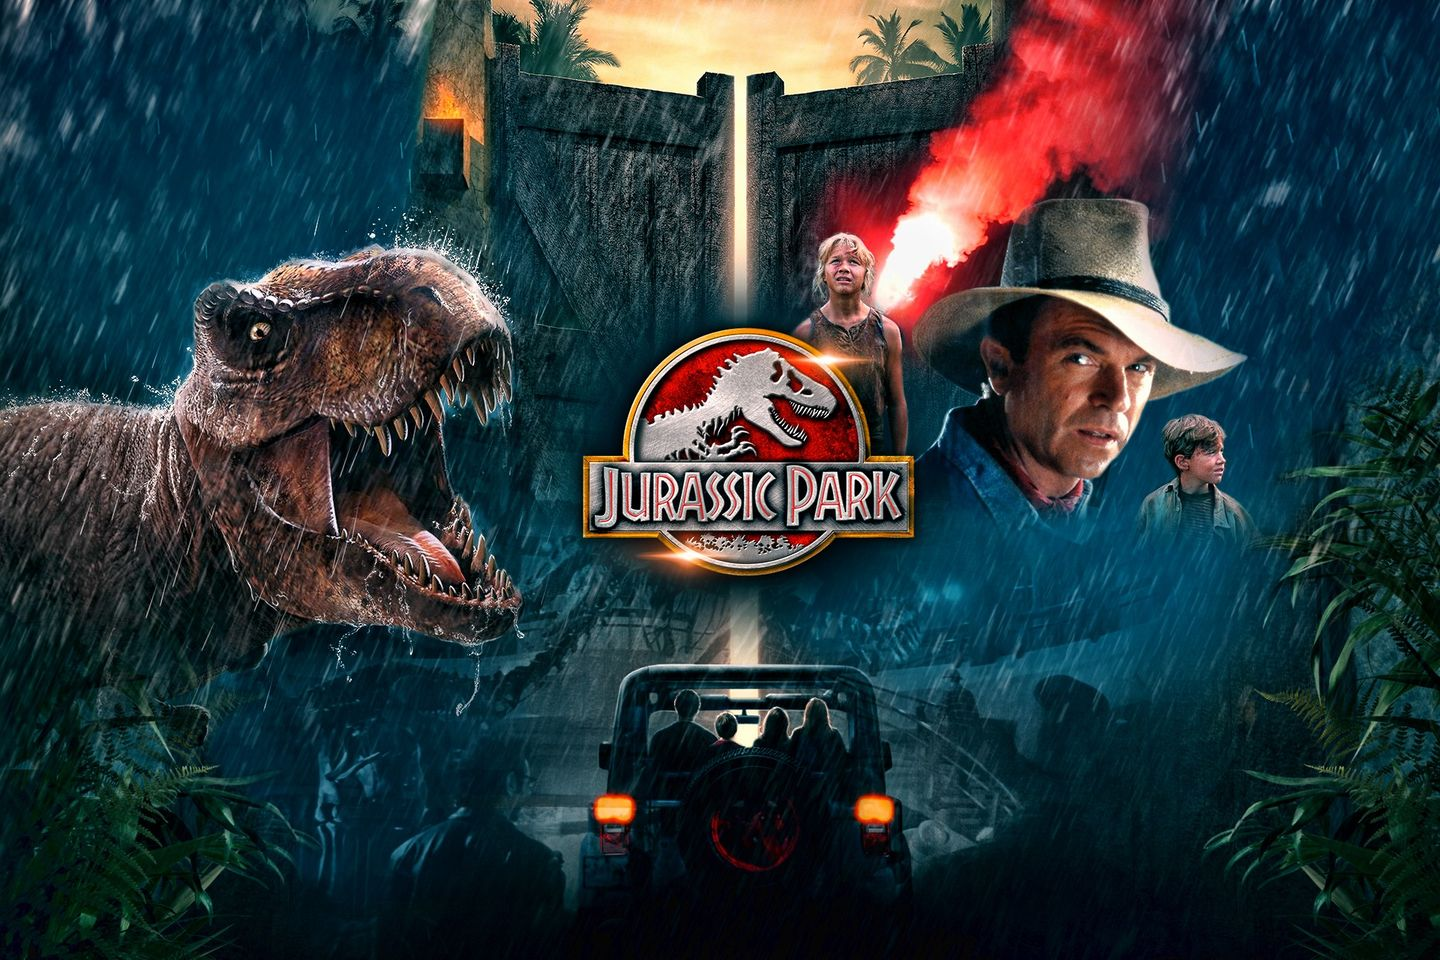 Movie Poster for Jurassic Park featuring dinosaurs and the main characters